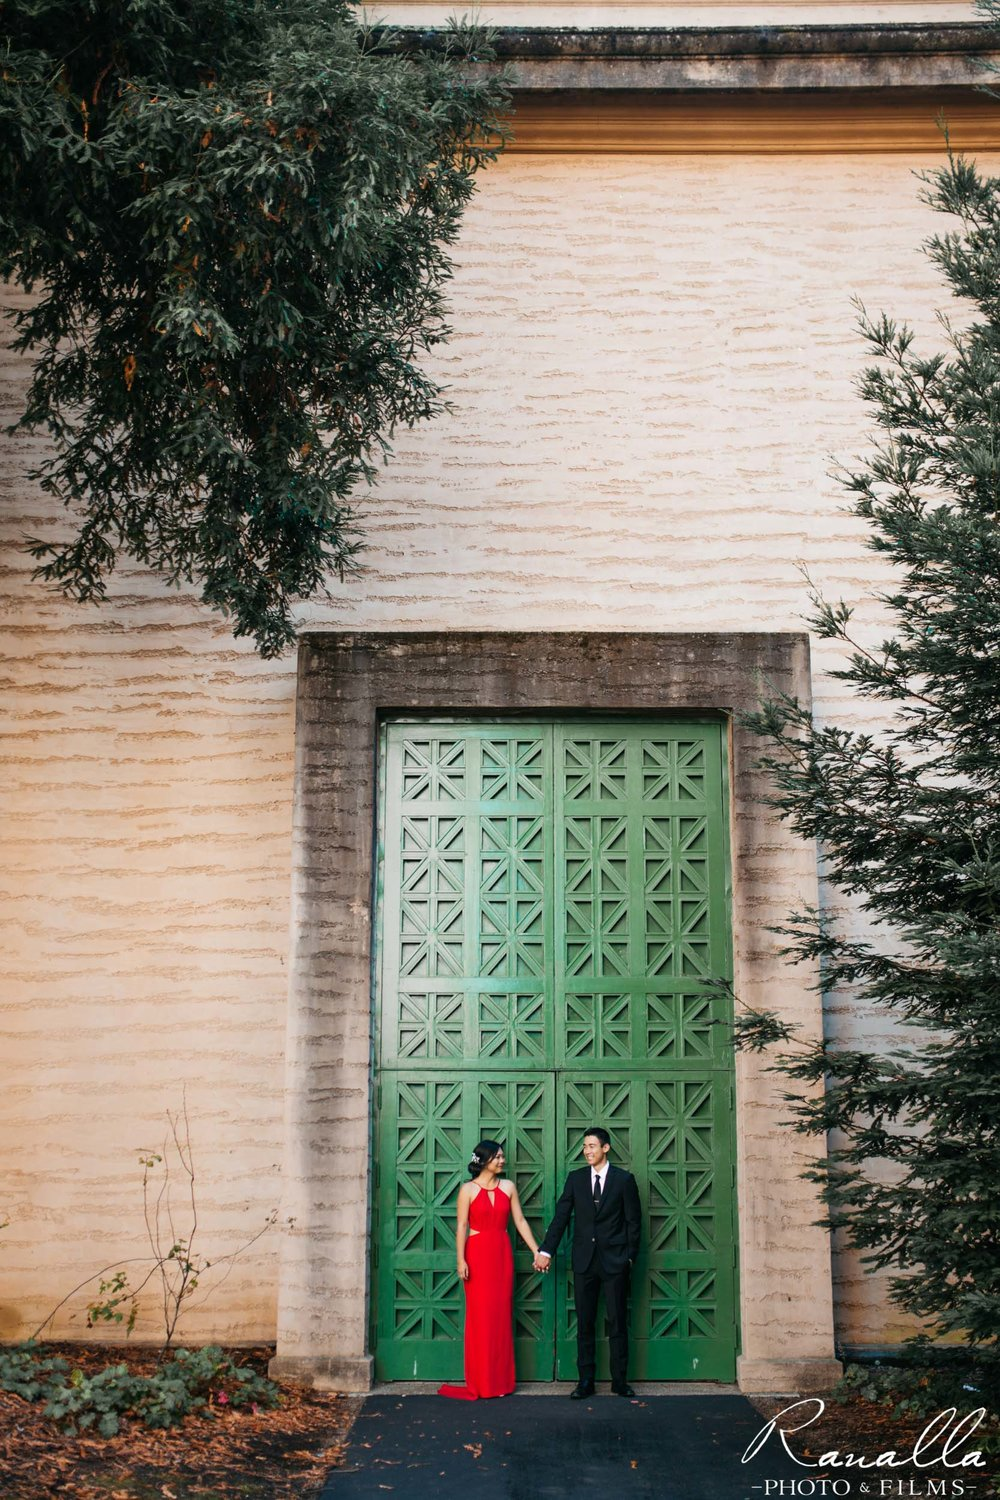 San Francisco Engagement Photography- Red Maxi Dress- Big Green Door- Palace of Fine Arts- Wedding Photos- Ranalla Photo & Films